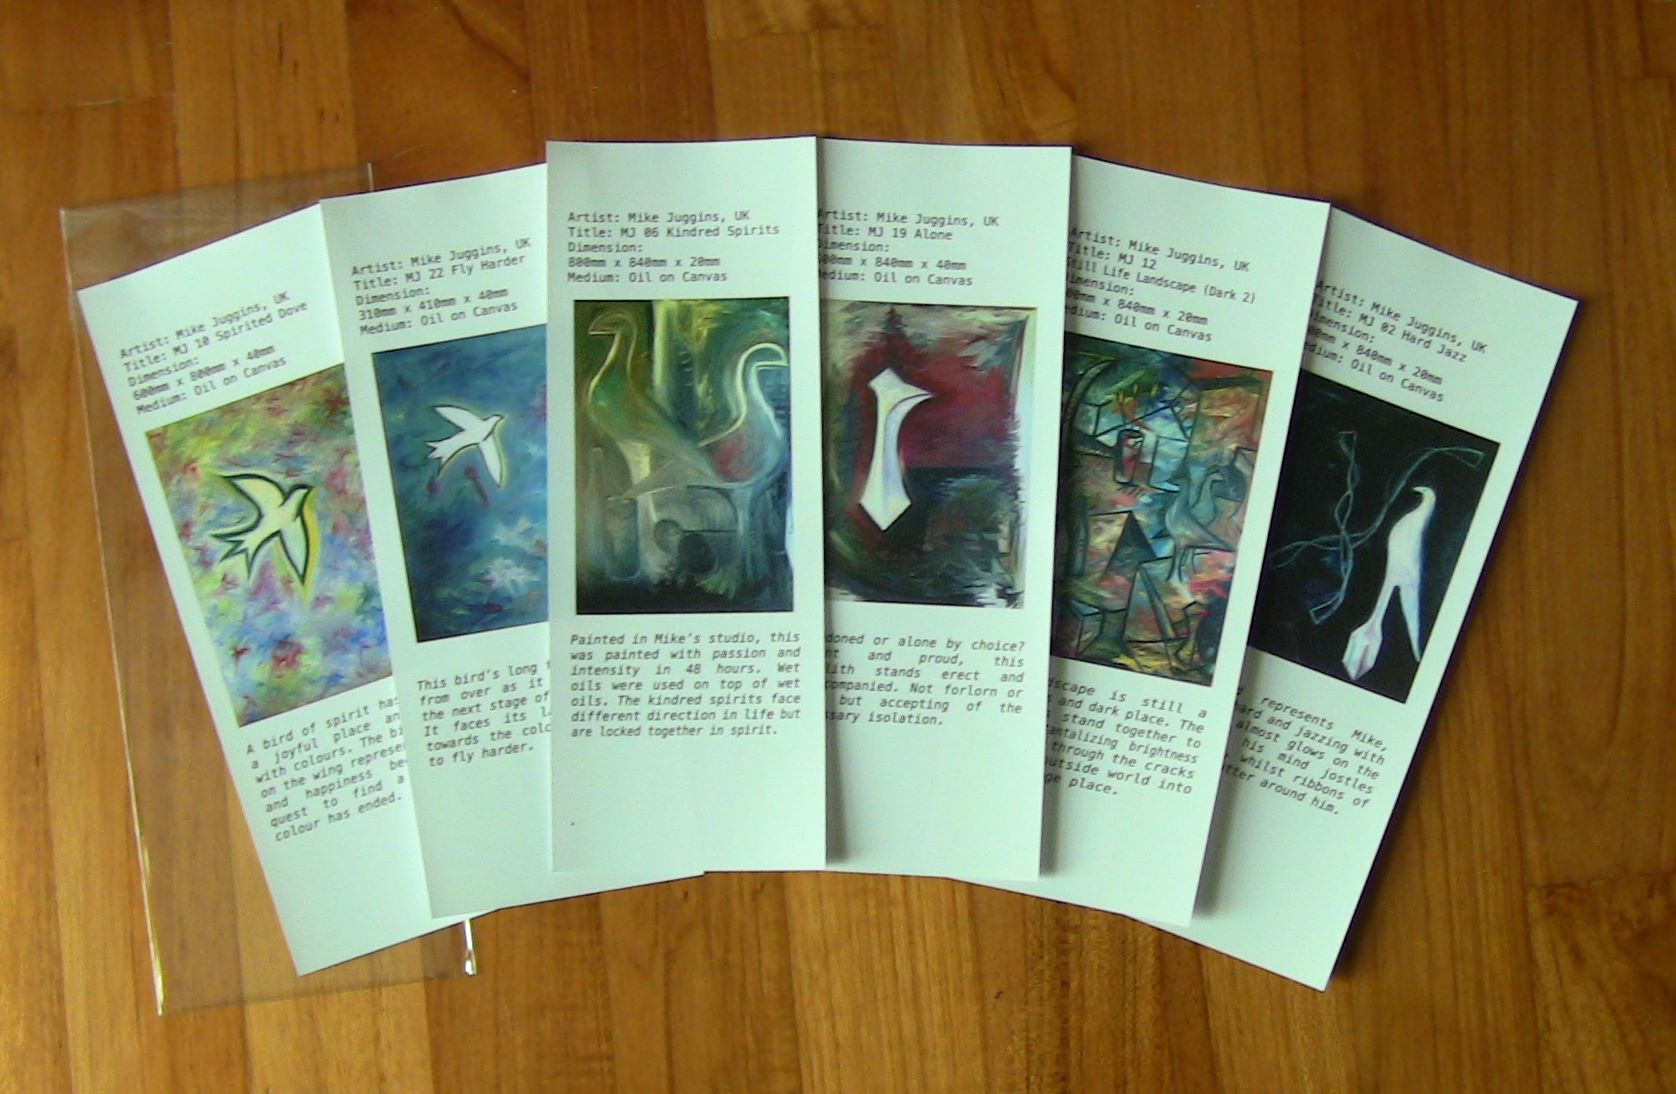 dd-bookmarks-per-set-of-6